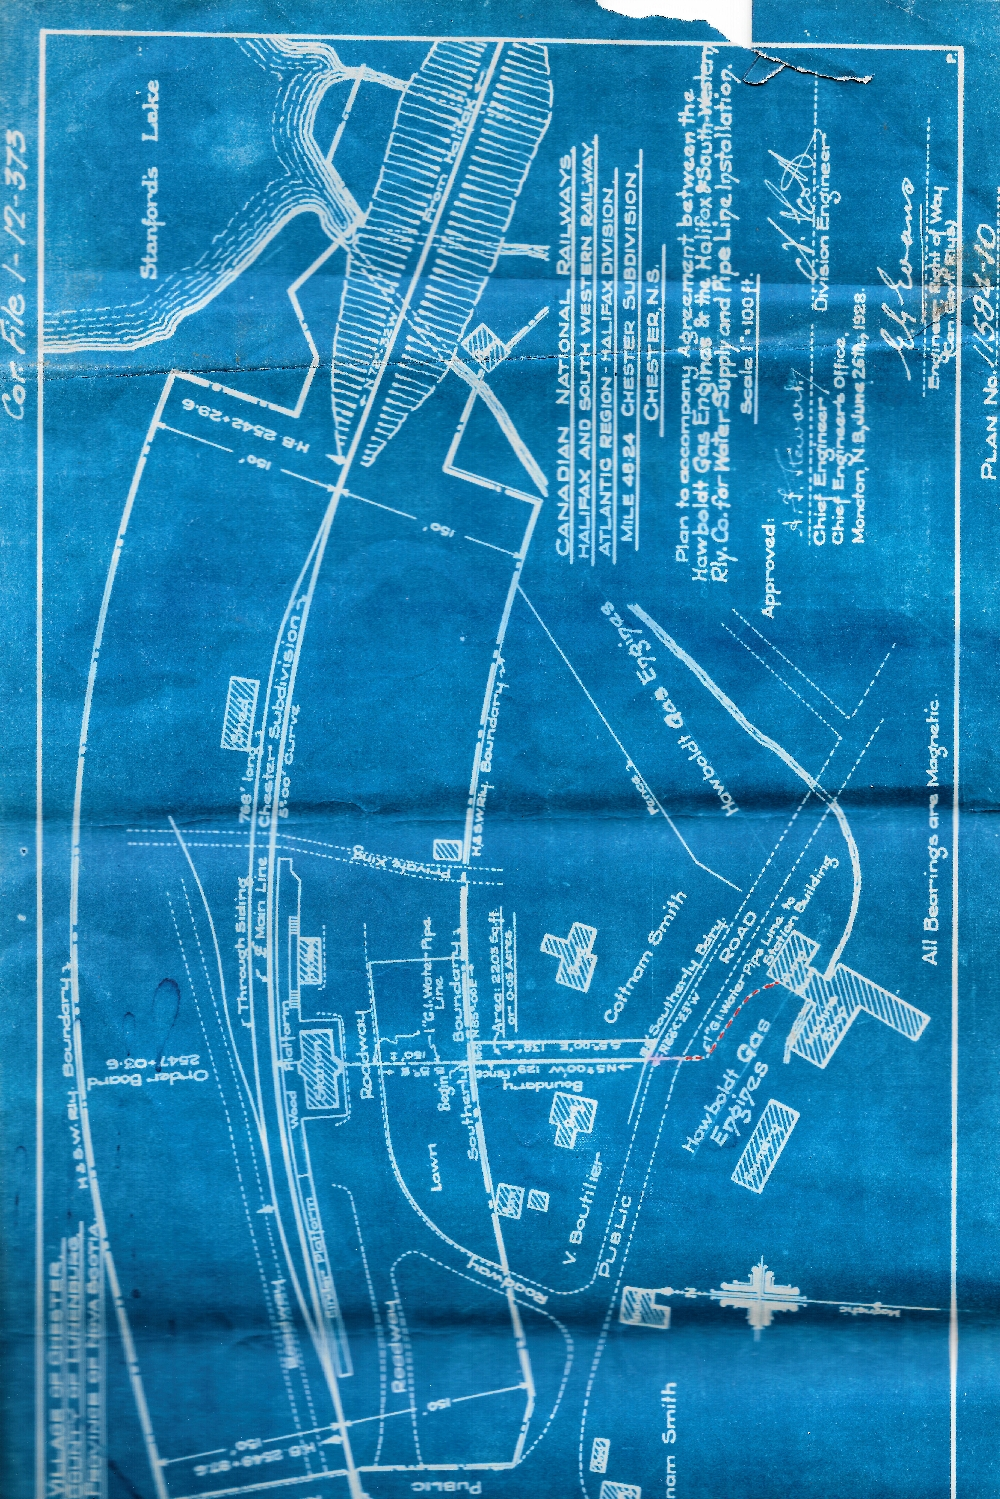 Railway plan of area around foundry forman hawboldt blueprint showing the railway around the foundry malvernweather Choice Image